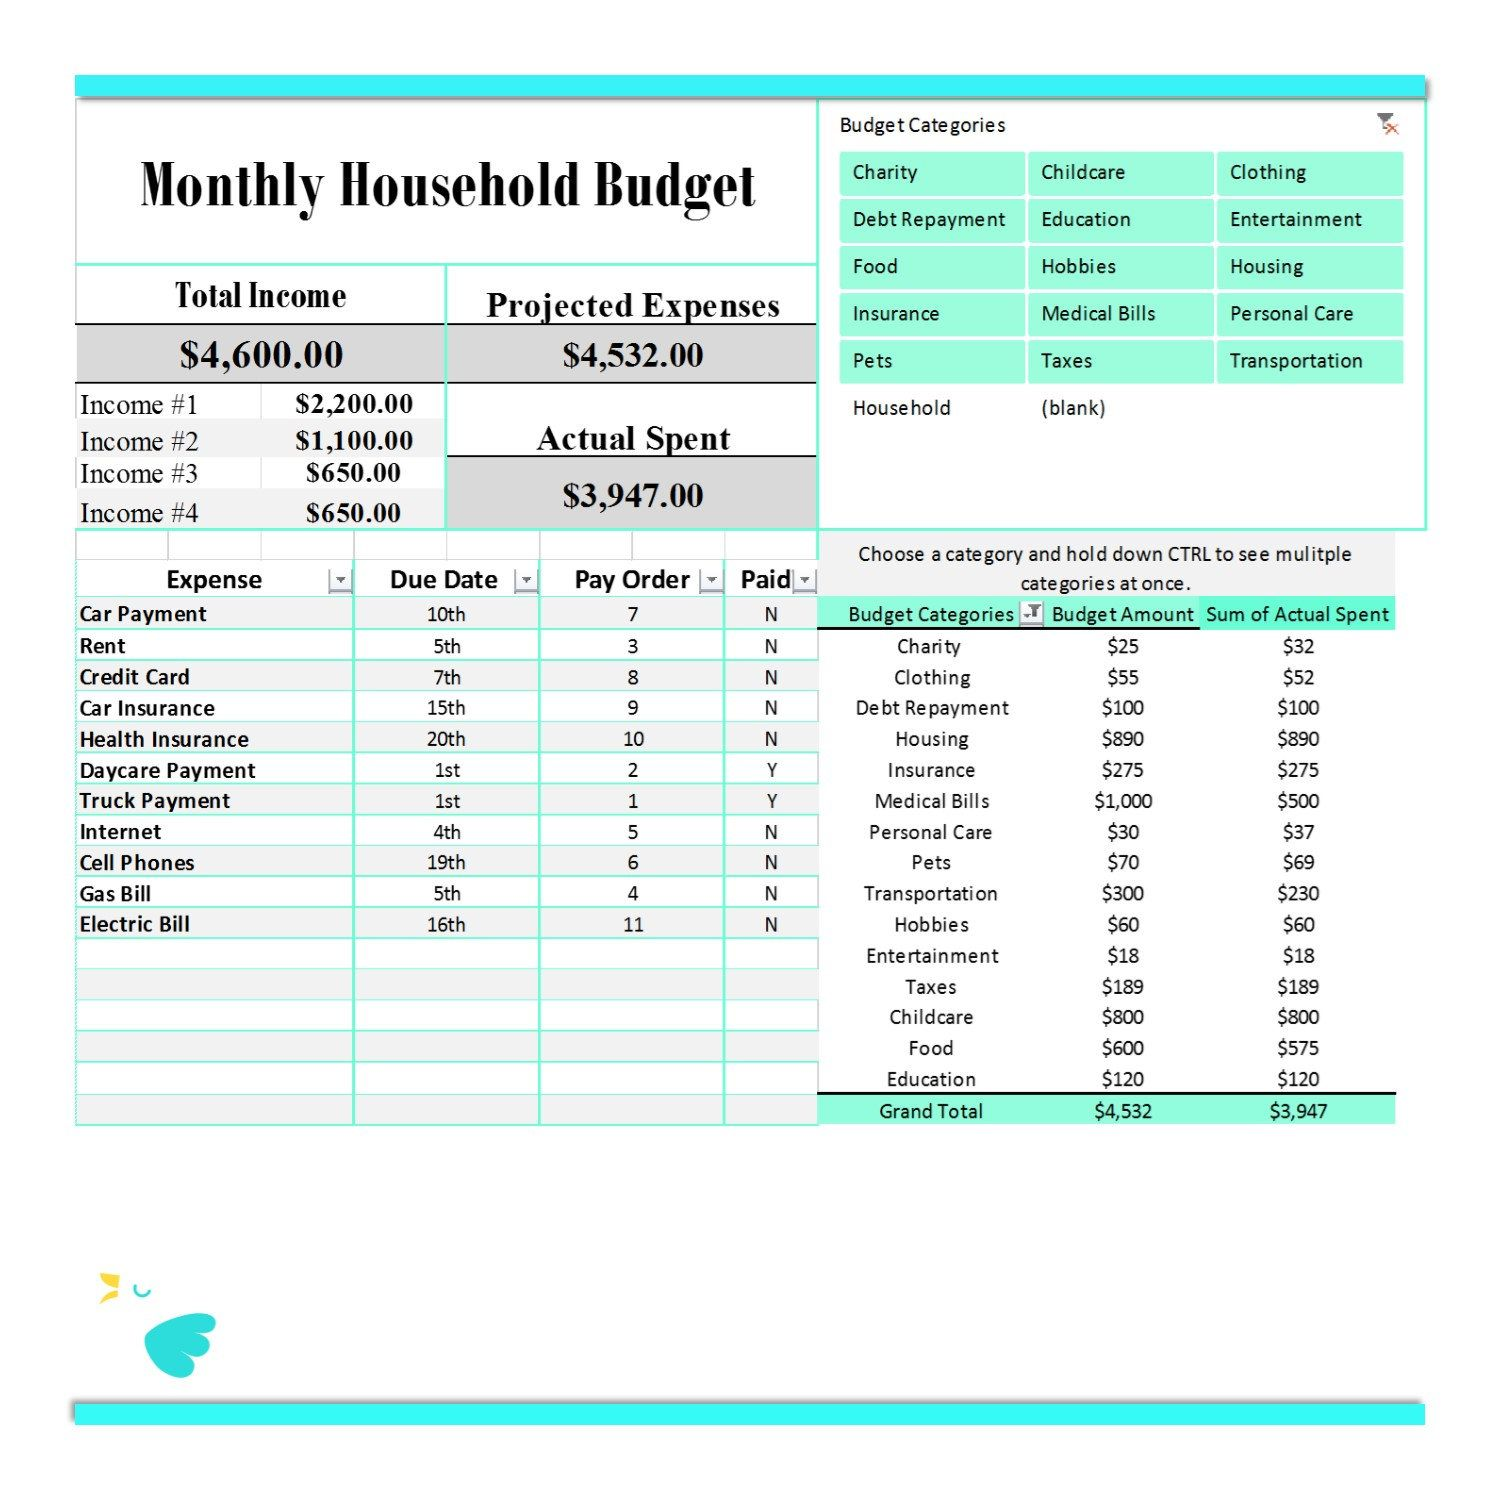 Monthly Budget Budget Organizer Budget Worksheet Cash Tracker